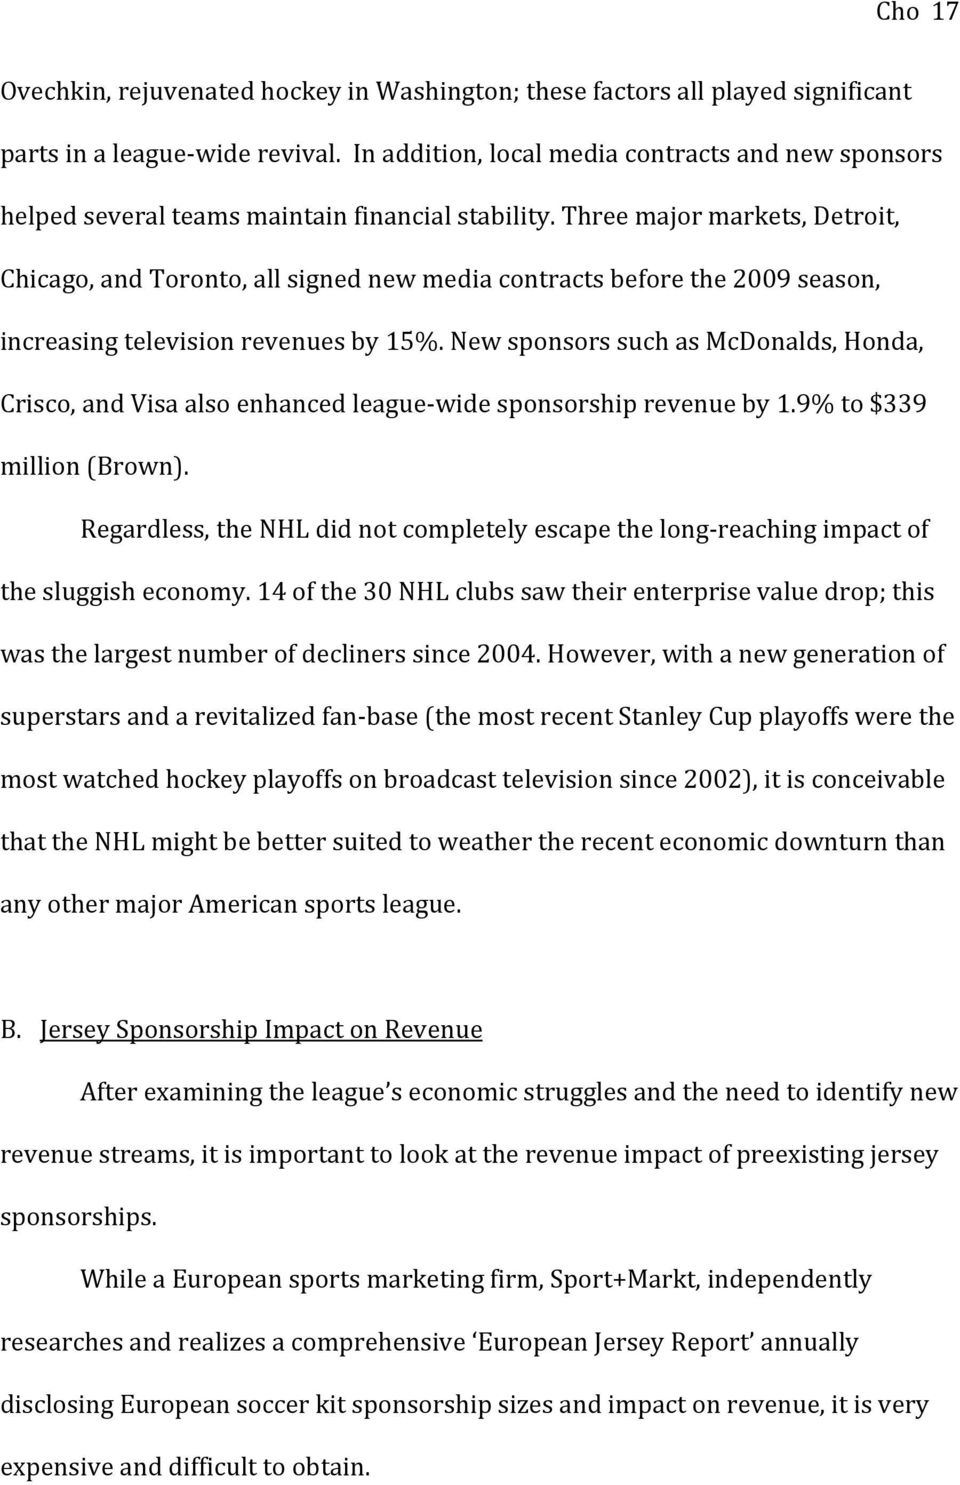 Three major markets, Detroit, Chicago, and Toronto, all signed new media contracts before the 2009 season, increasing television revenues by 15%.